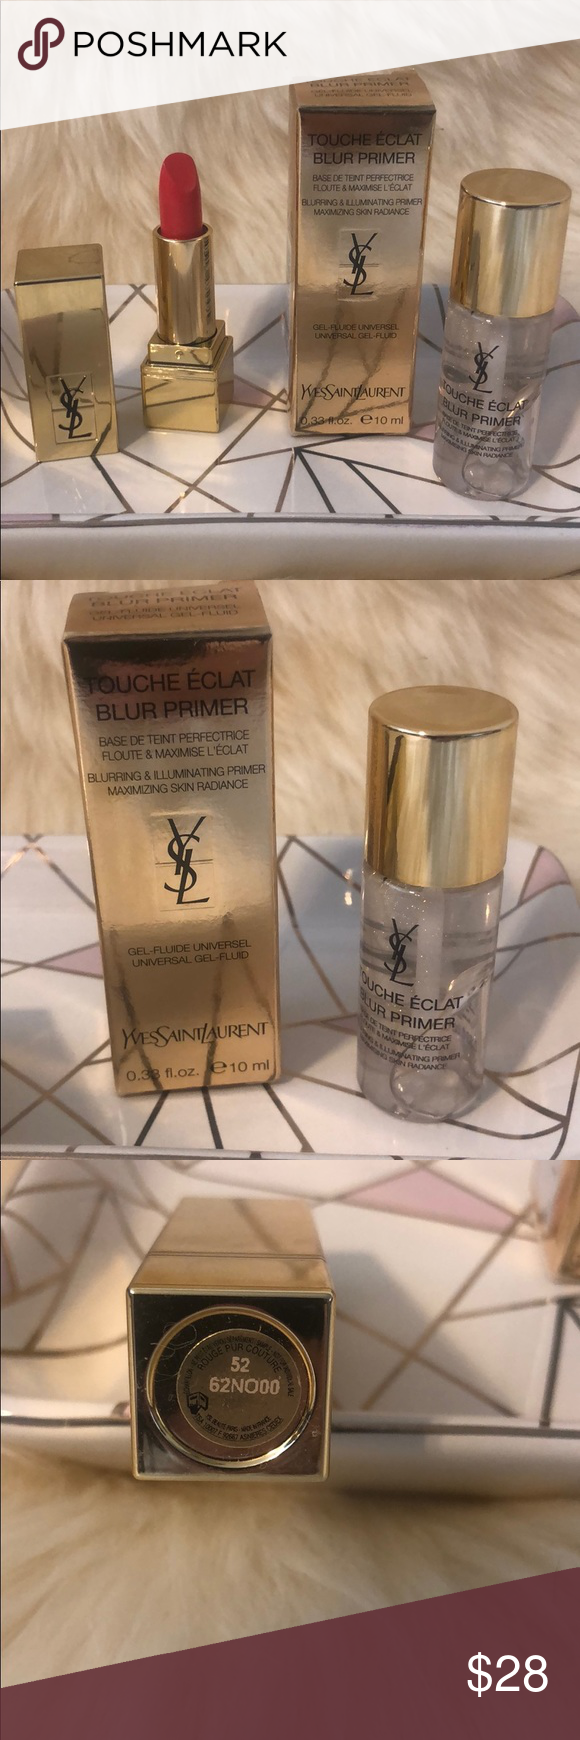 YSL Touché Éclat Blur Primer and Couture Lipstick in 2020